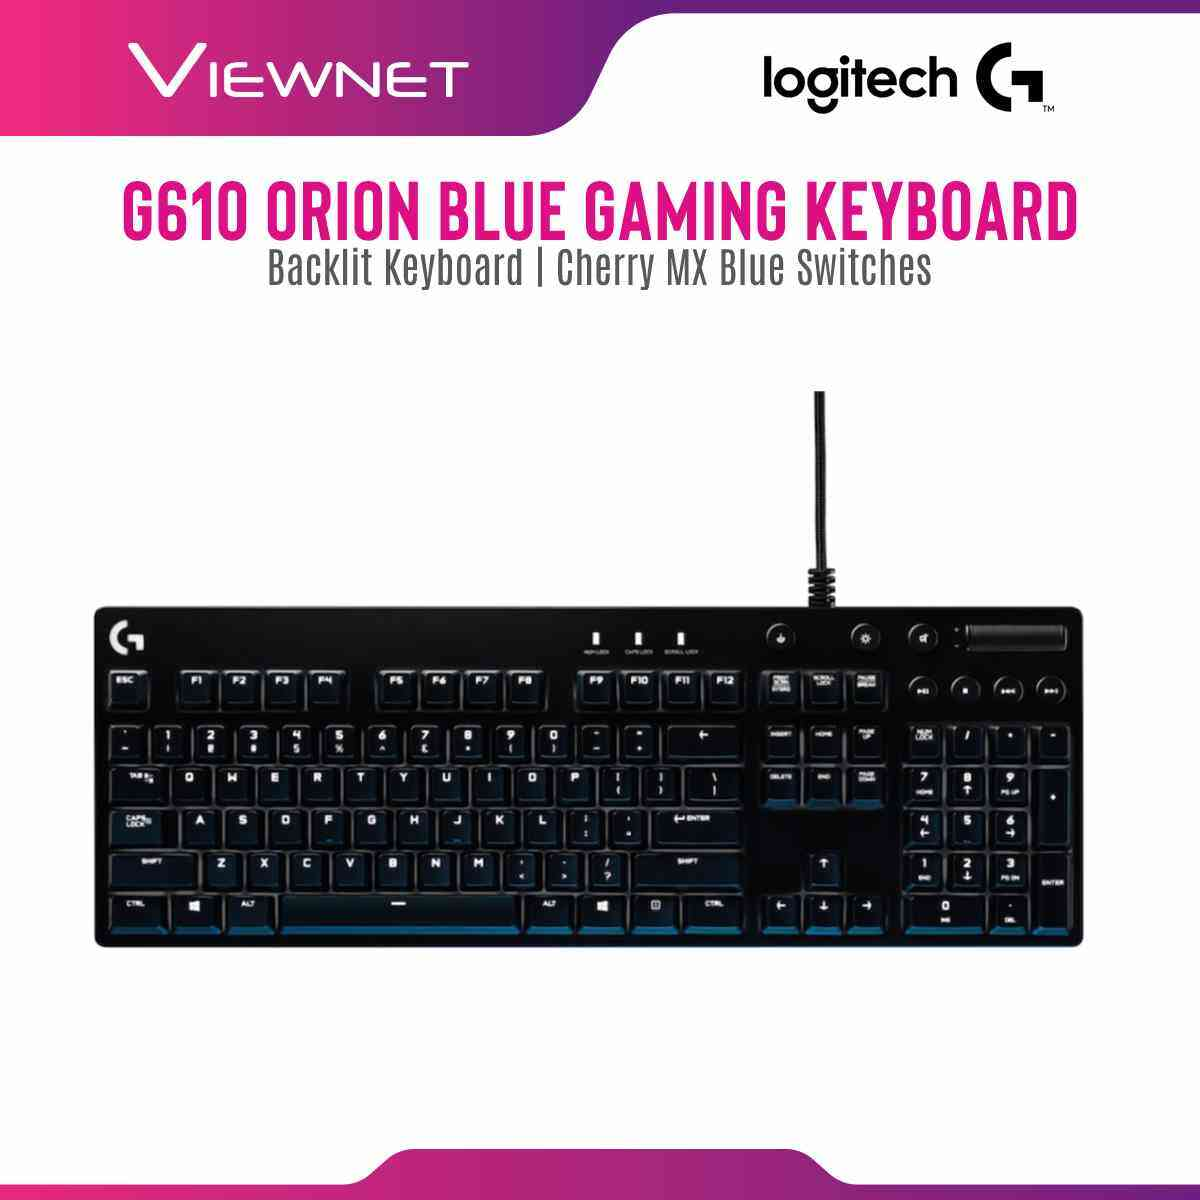 Logitech G610 Orion Blue Mechanical Gaming Keyboard with Cherry MX Blue Switches Media Control Logitech Software Support